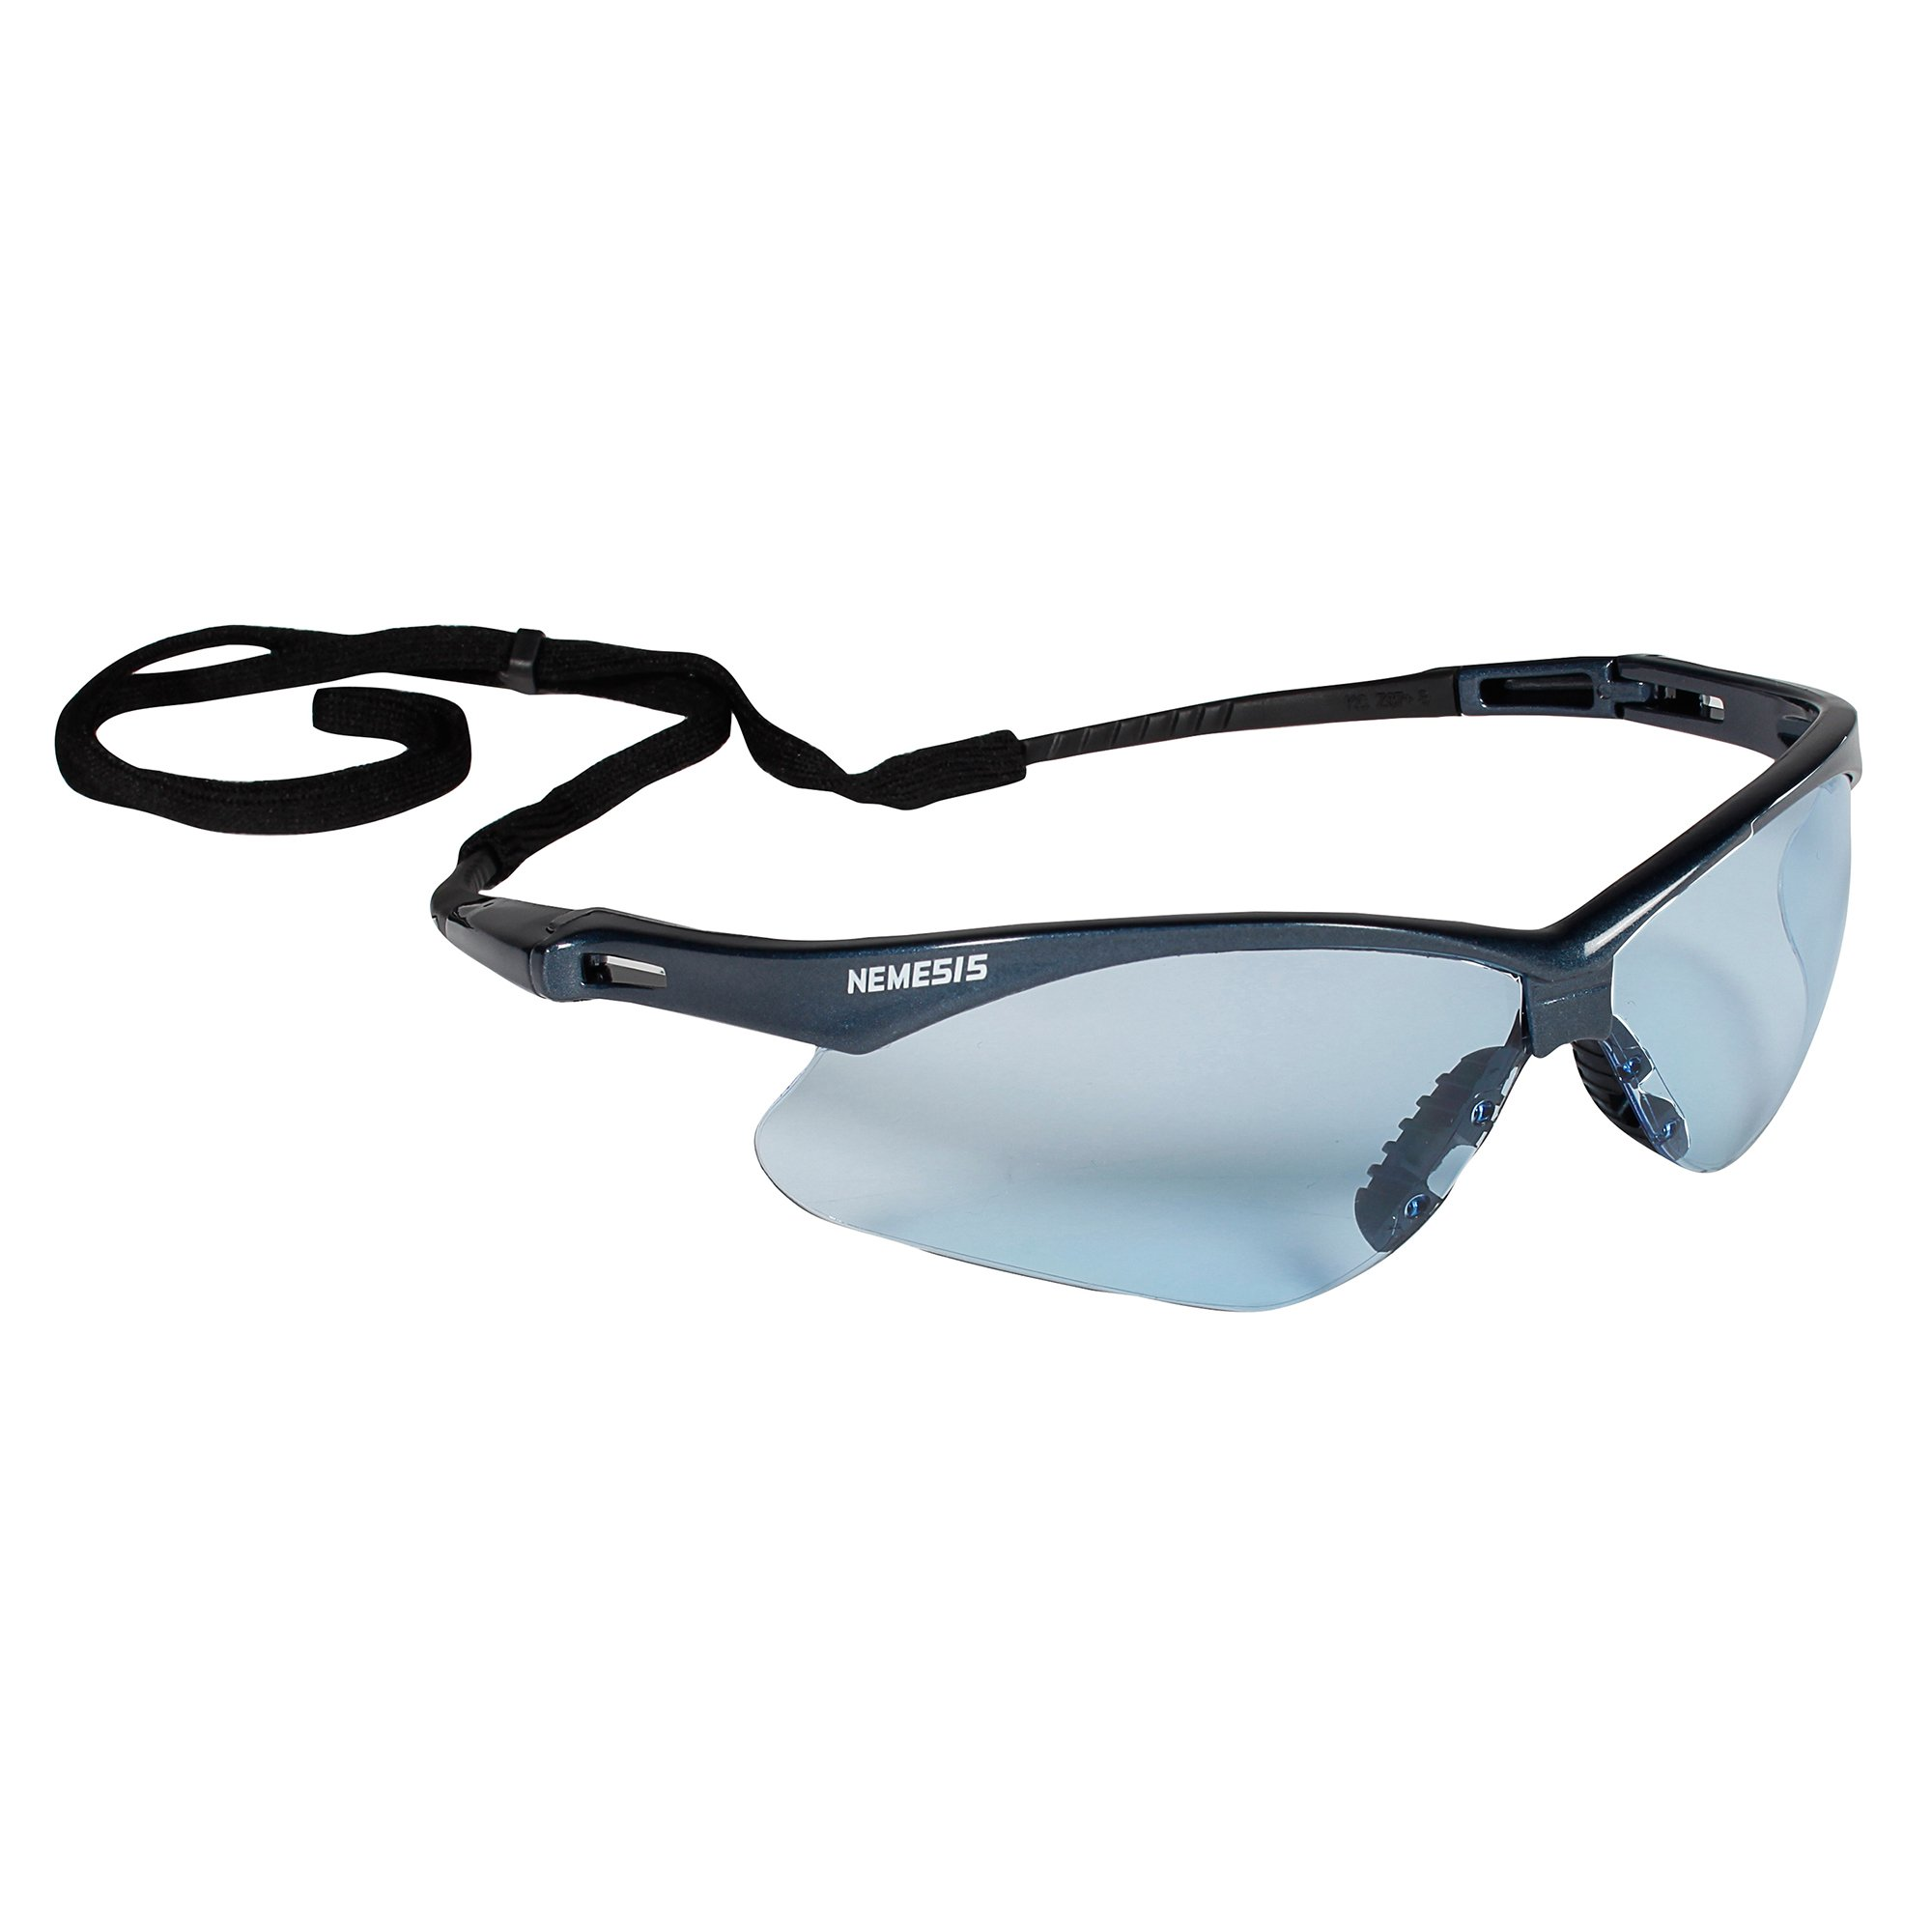 Jackson Safety V30 Nemesis Safety Glasses (19639), Light Blue Lenses with Blue Frame, 12 Pairs / Case